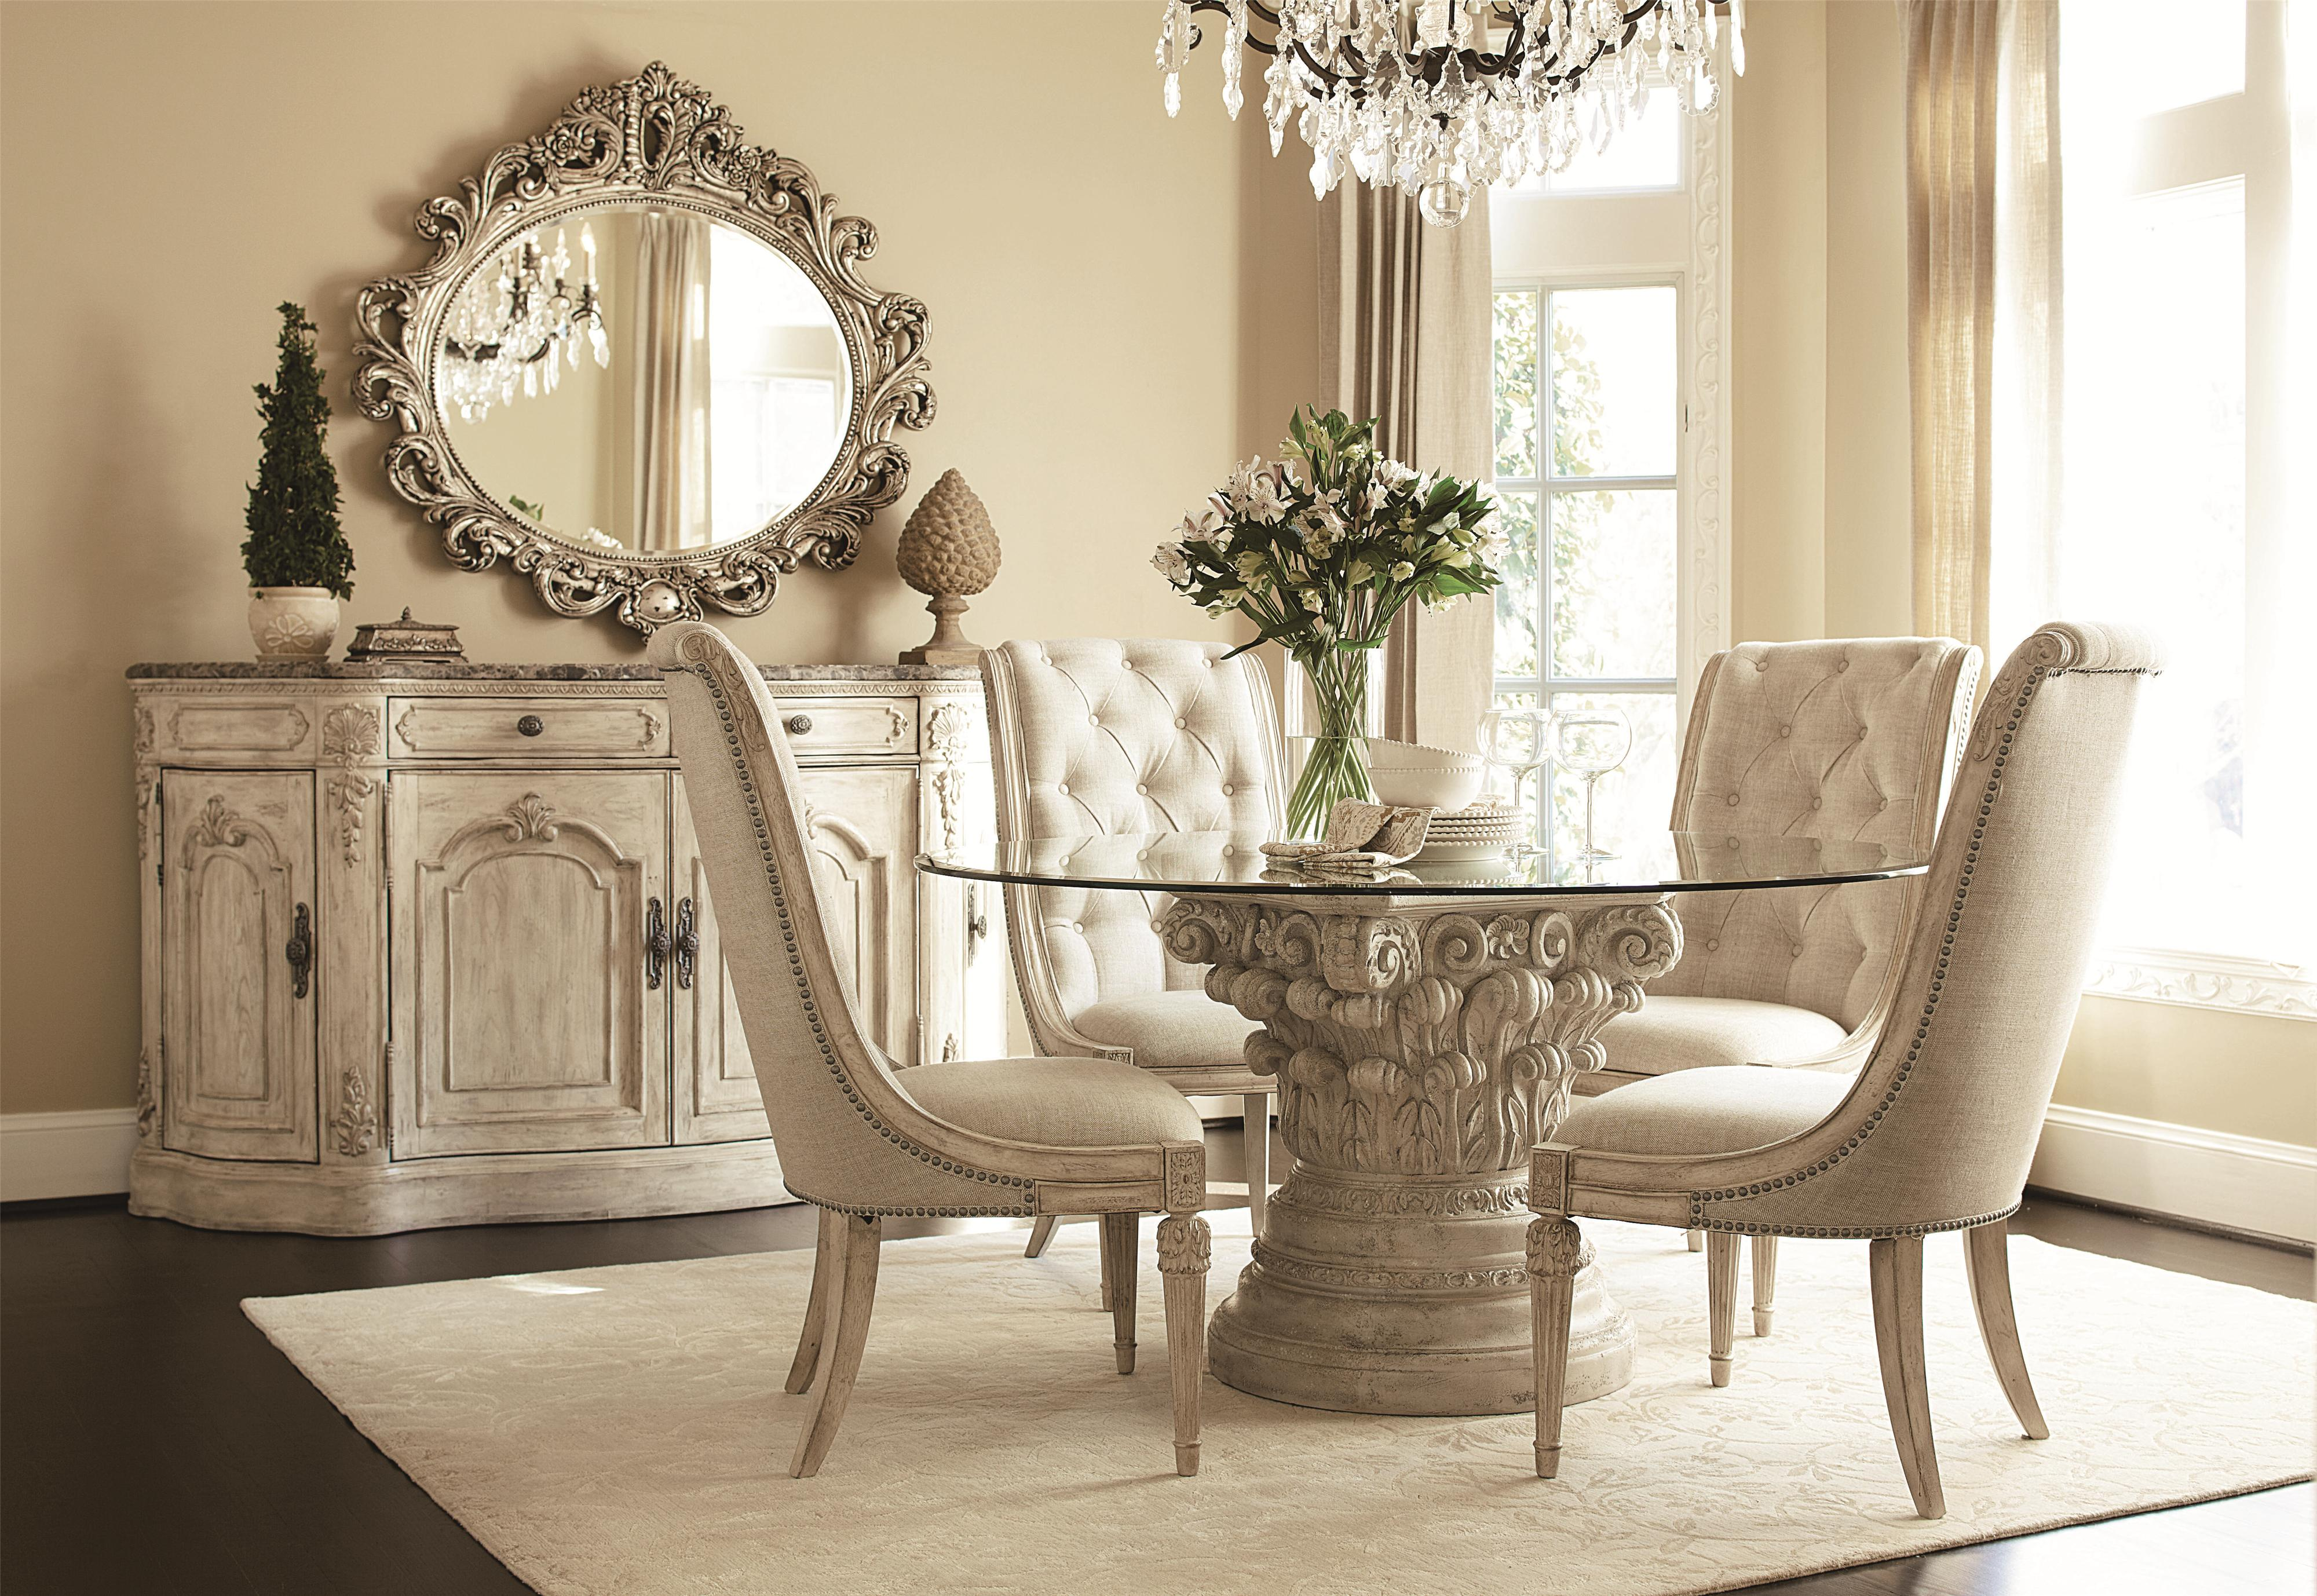 Antique dining room table and chairs - Antique Dining Room Table And Chairs